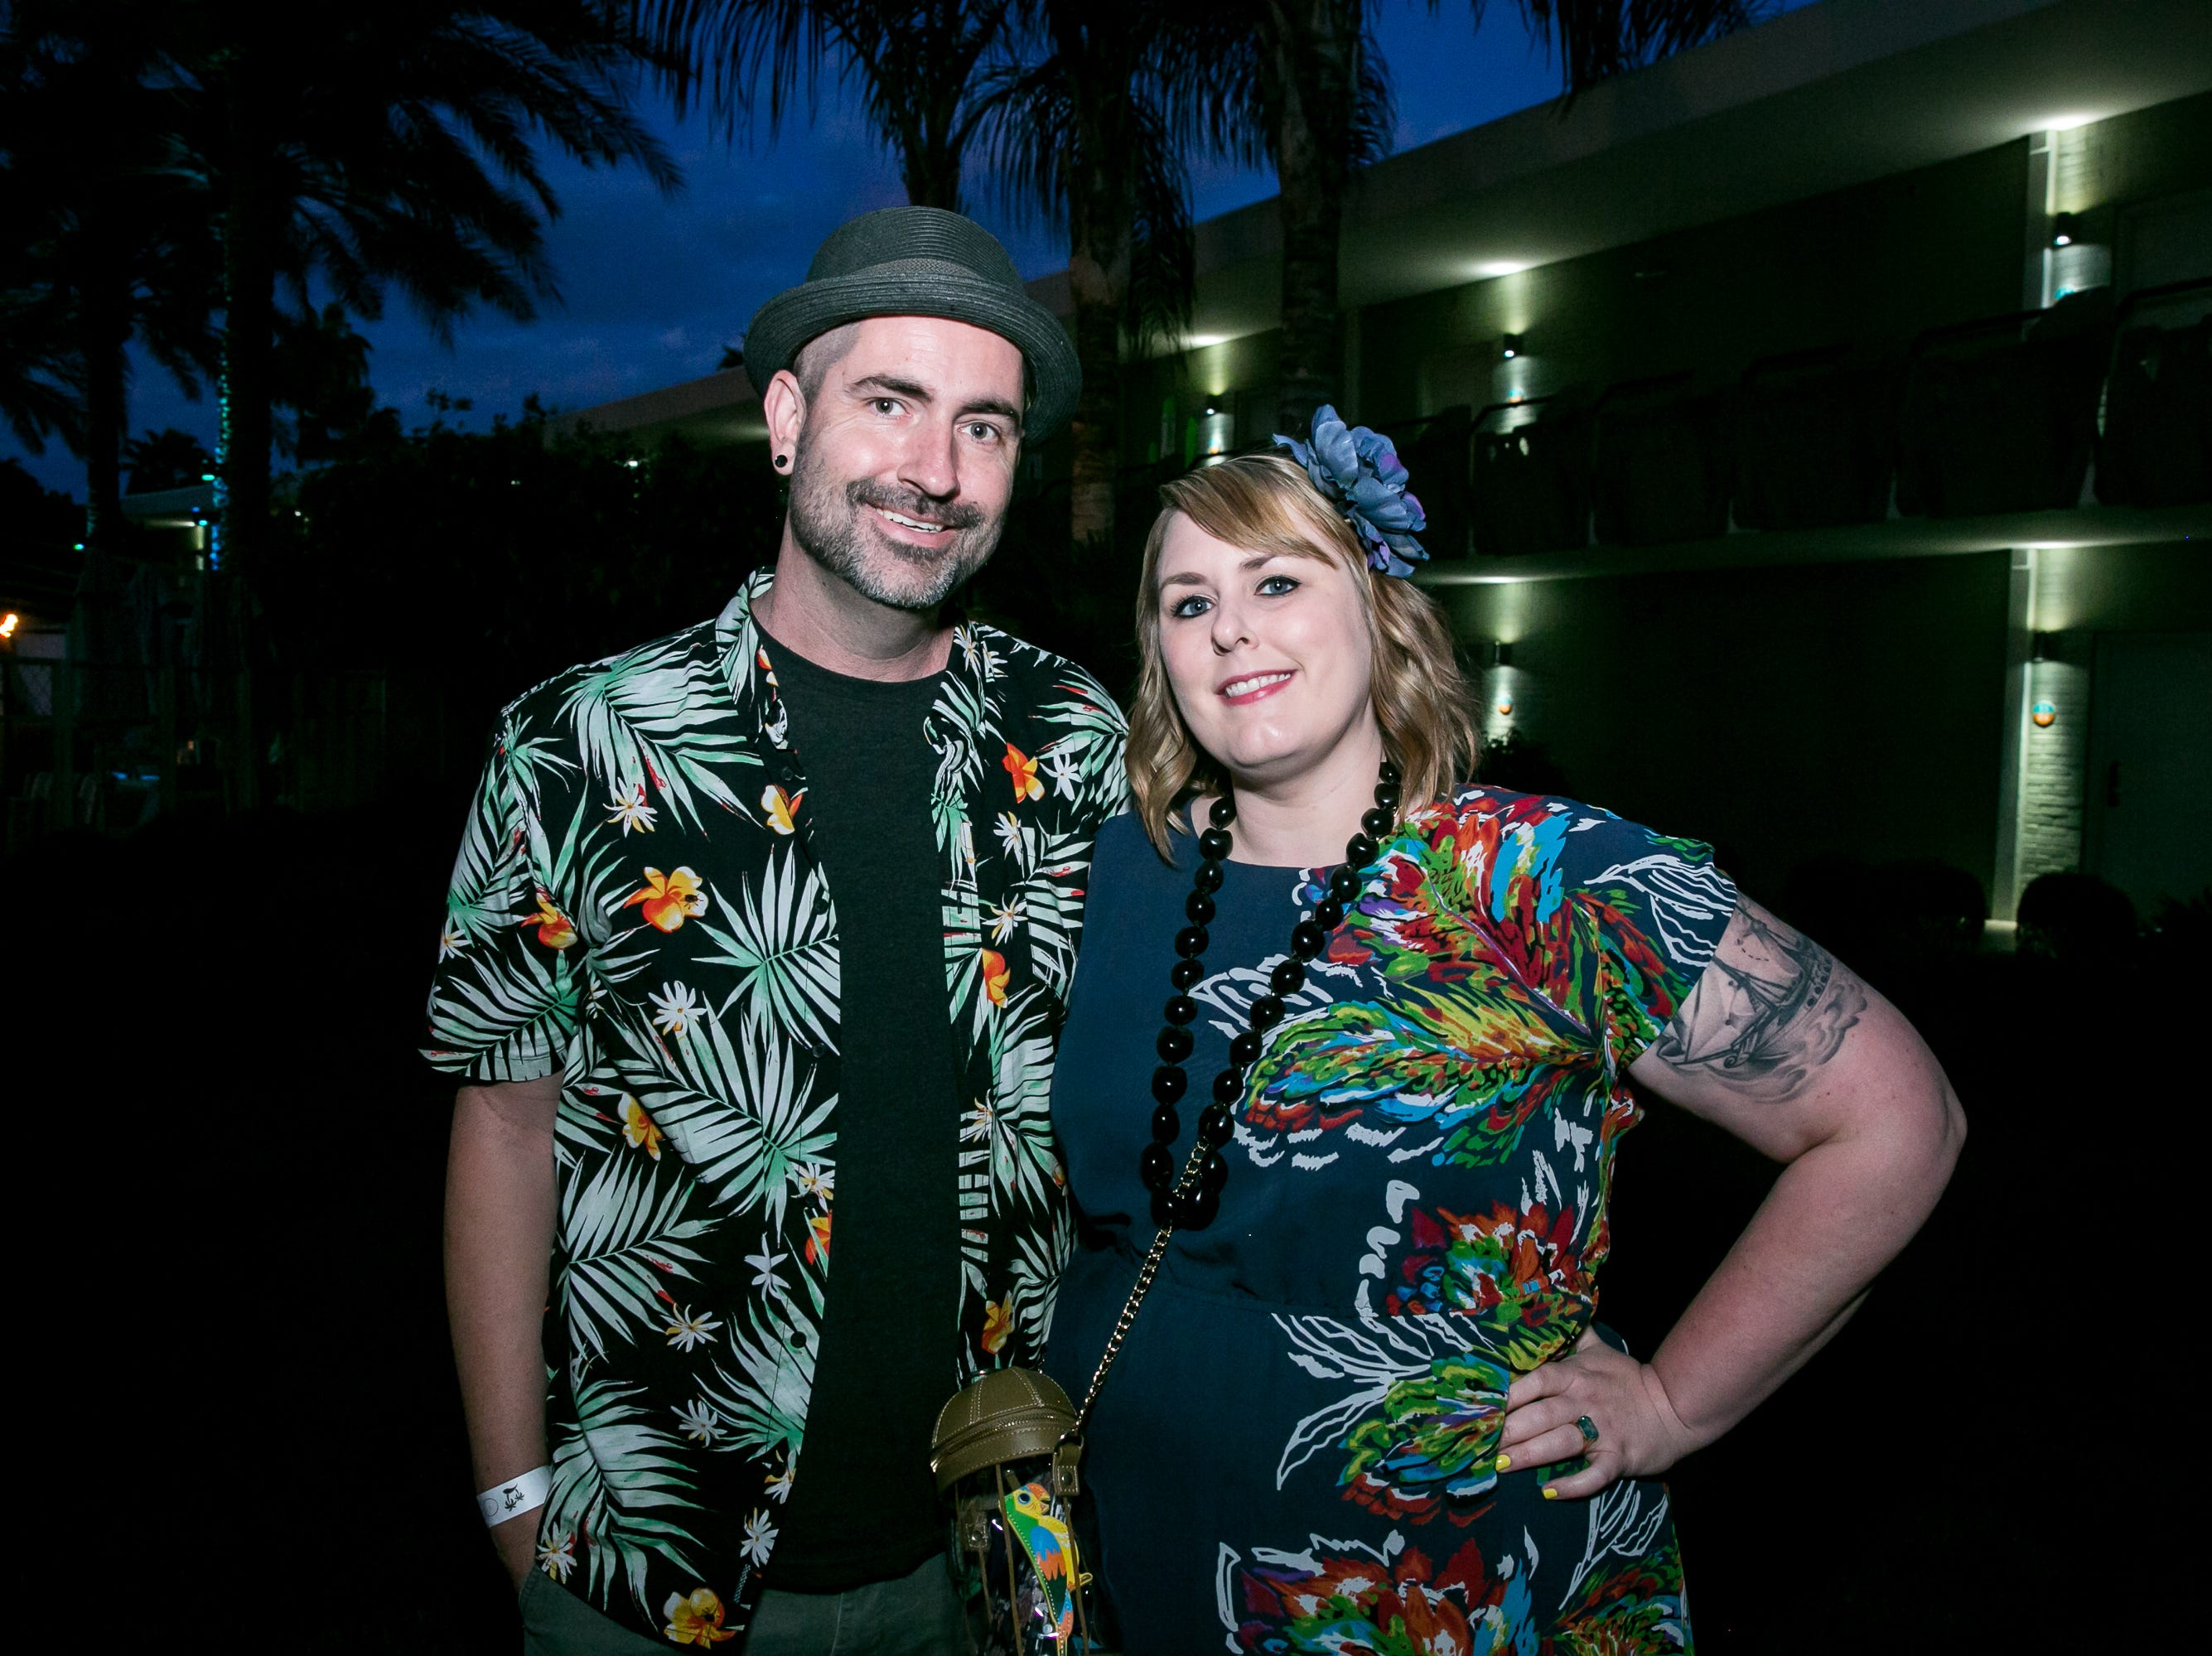 These two enjoyed a lovely date night during Arizona Tiki Oasis at Hotel Valley Ho in Scottsdale on April 12, 2019.